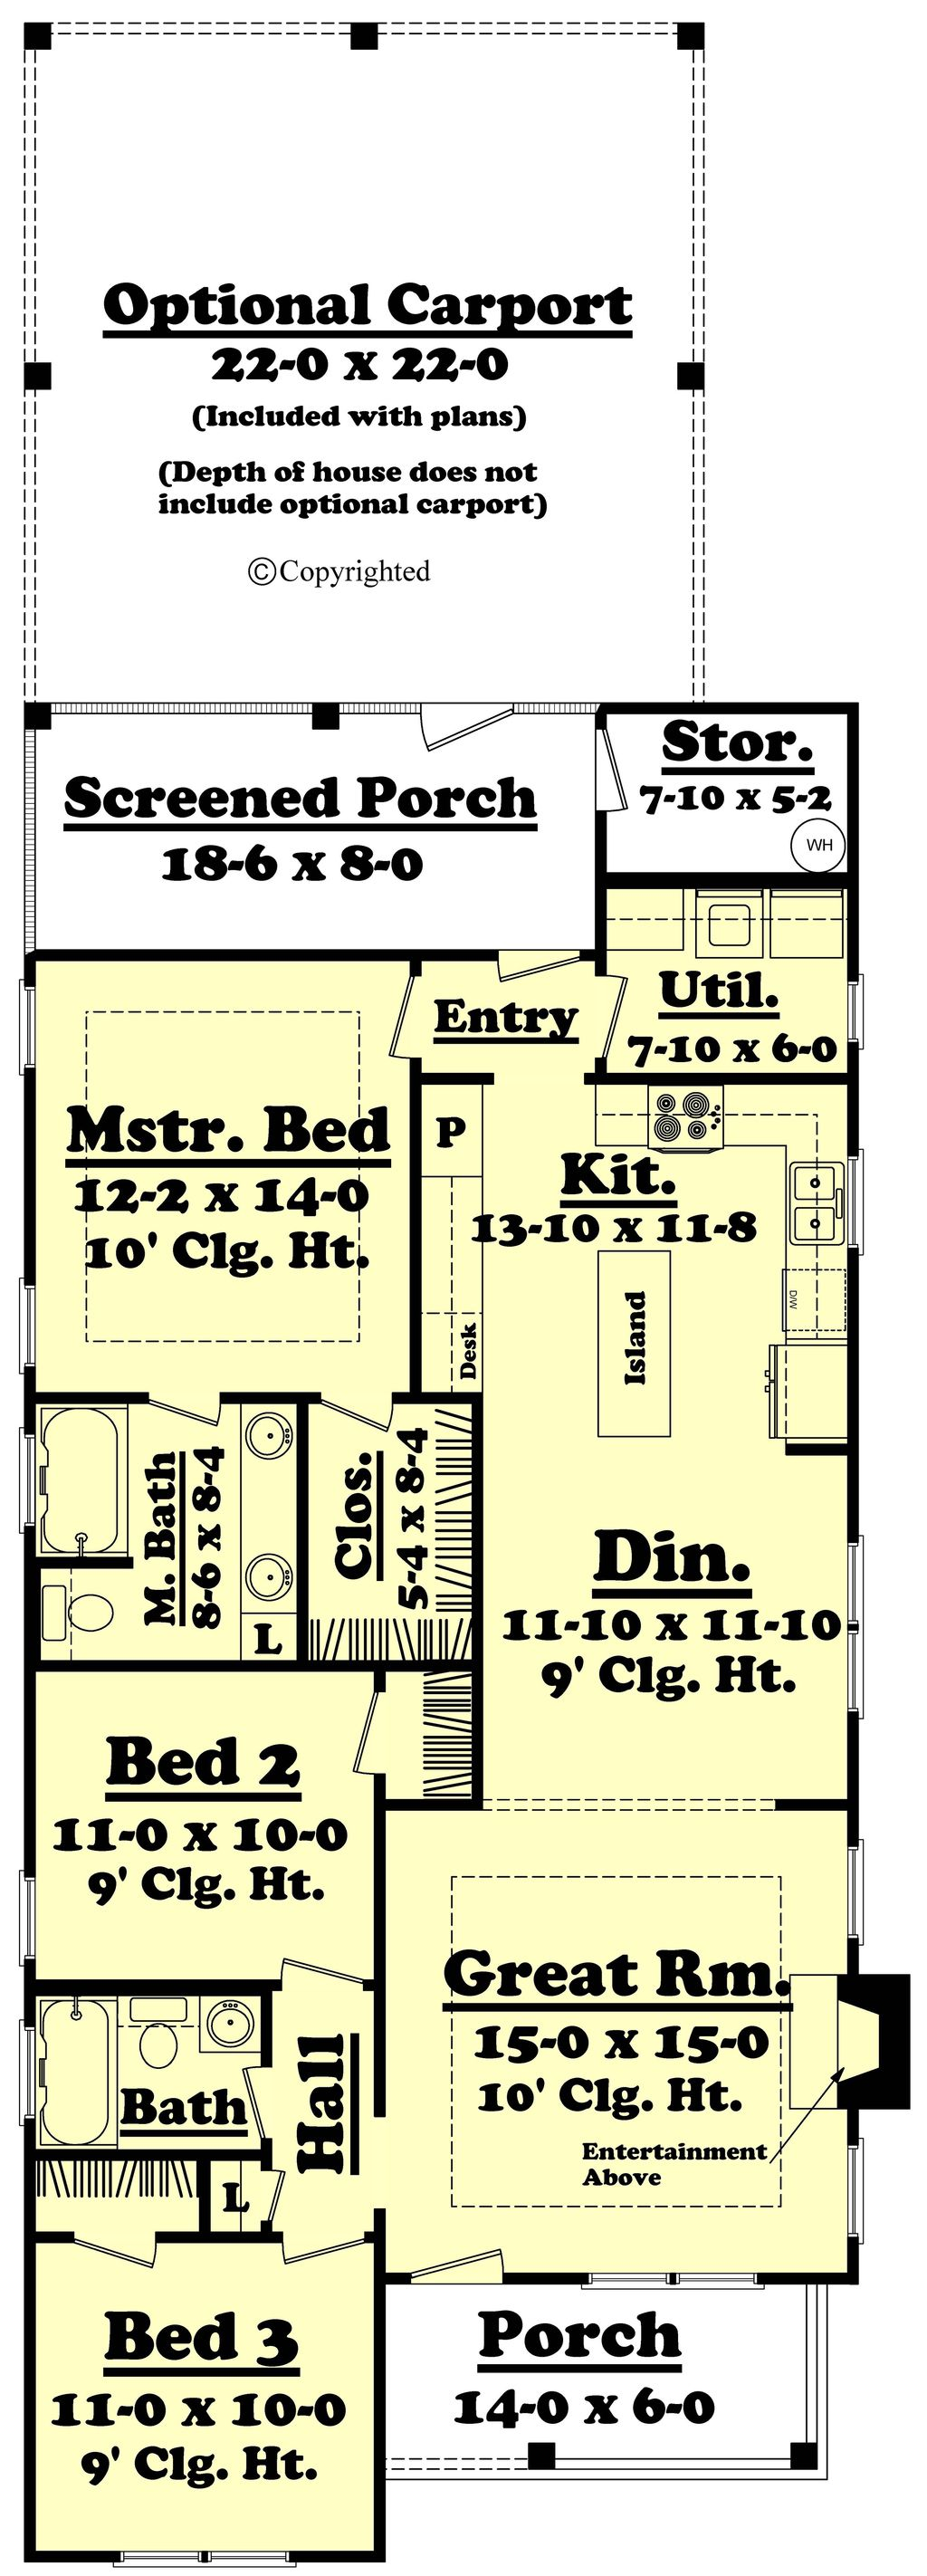 Cottage style house plan 3 beds baths 1300 sq ft for Small baths 1300